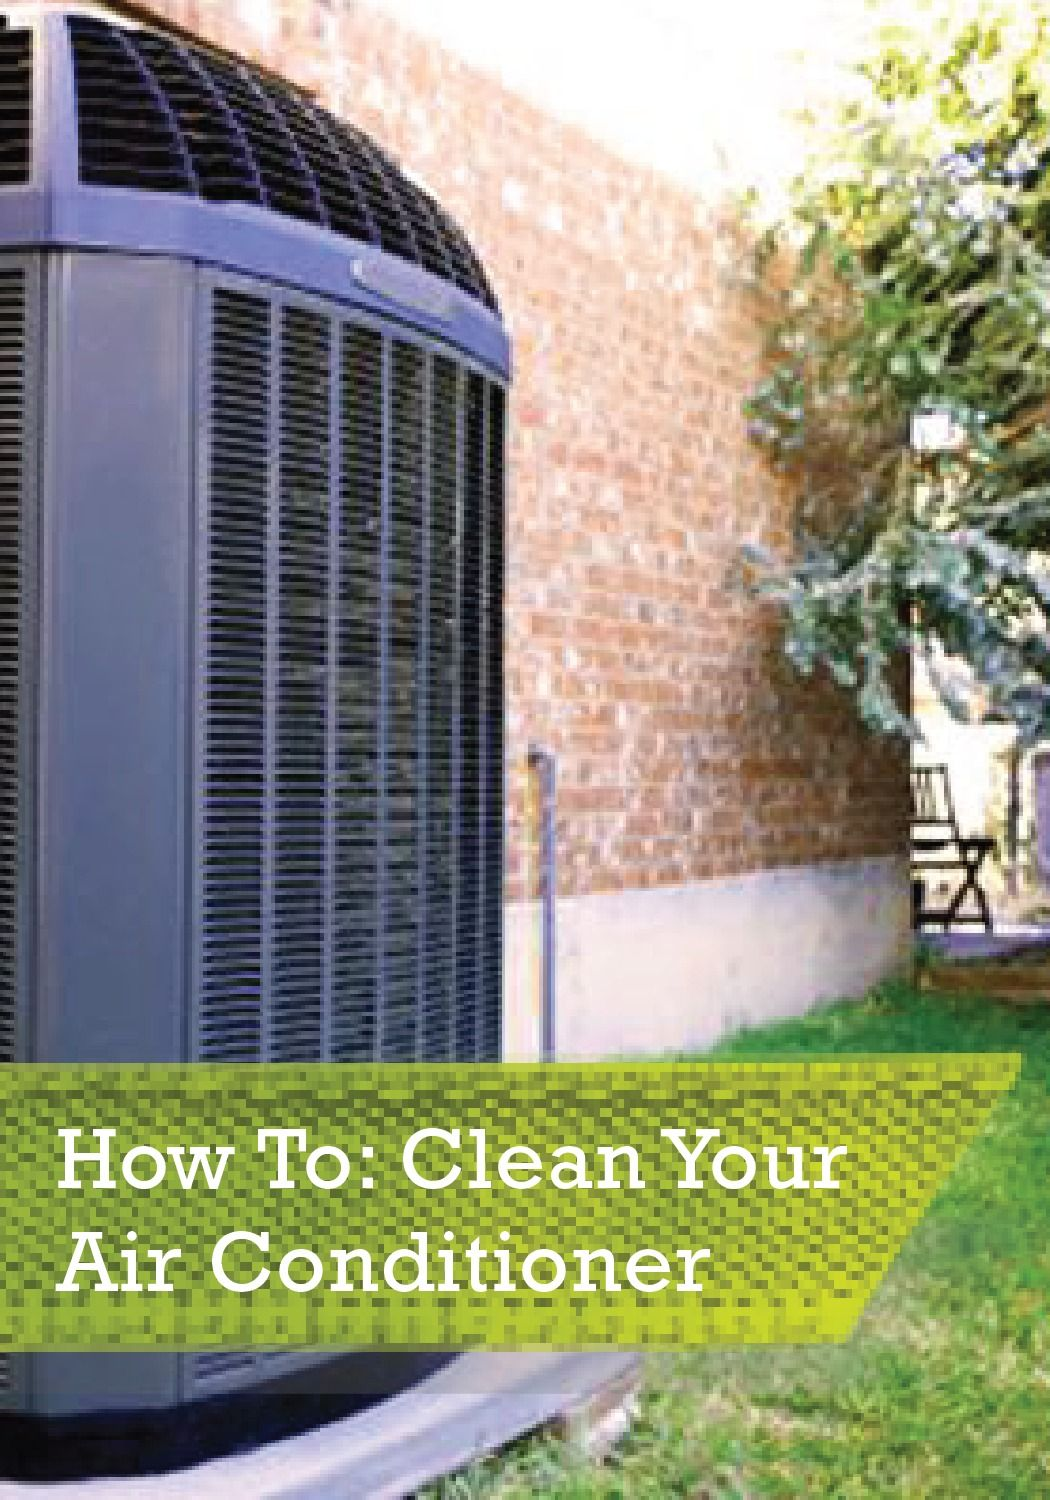 Learn to clean an air conditioner to keep it running